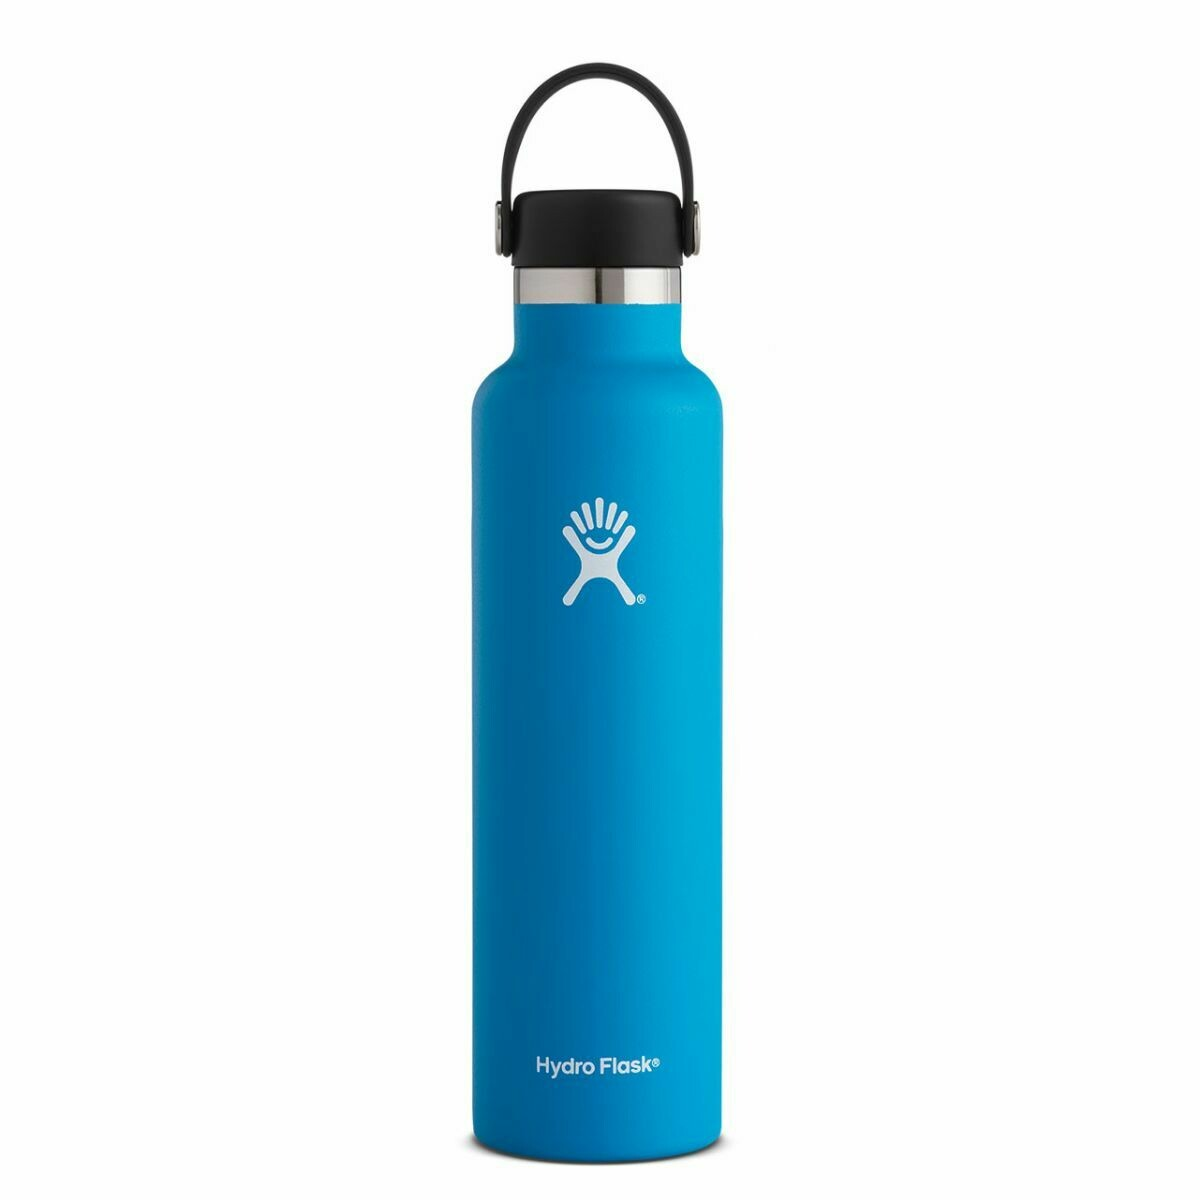 Hydro Flask 24oz Standard Mouth- Pacific